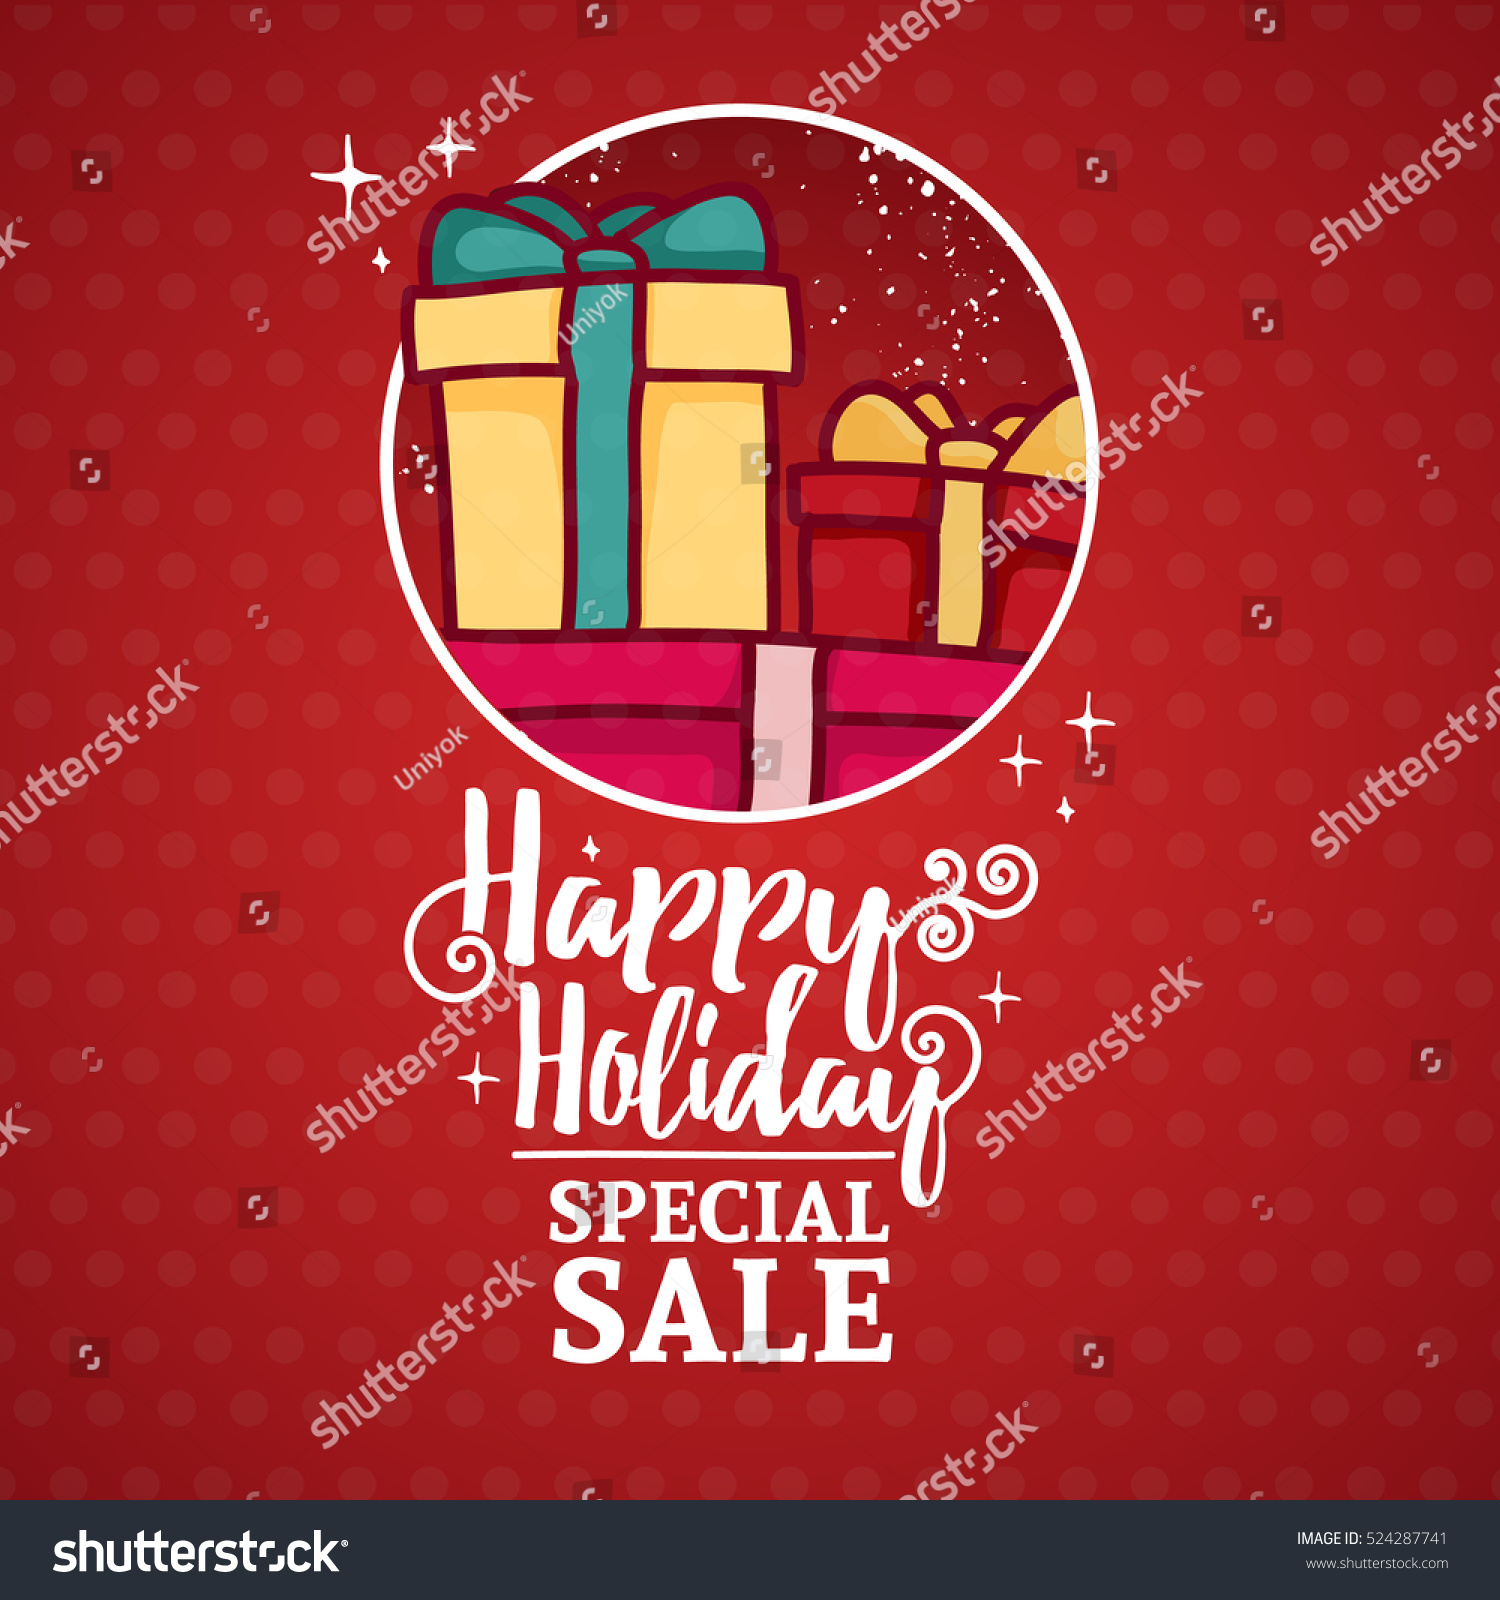 Template Design Banner Christmas Sale Frame Stock Vector (Royalty ...